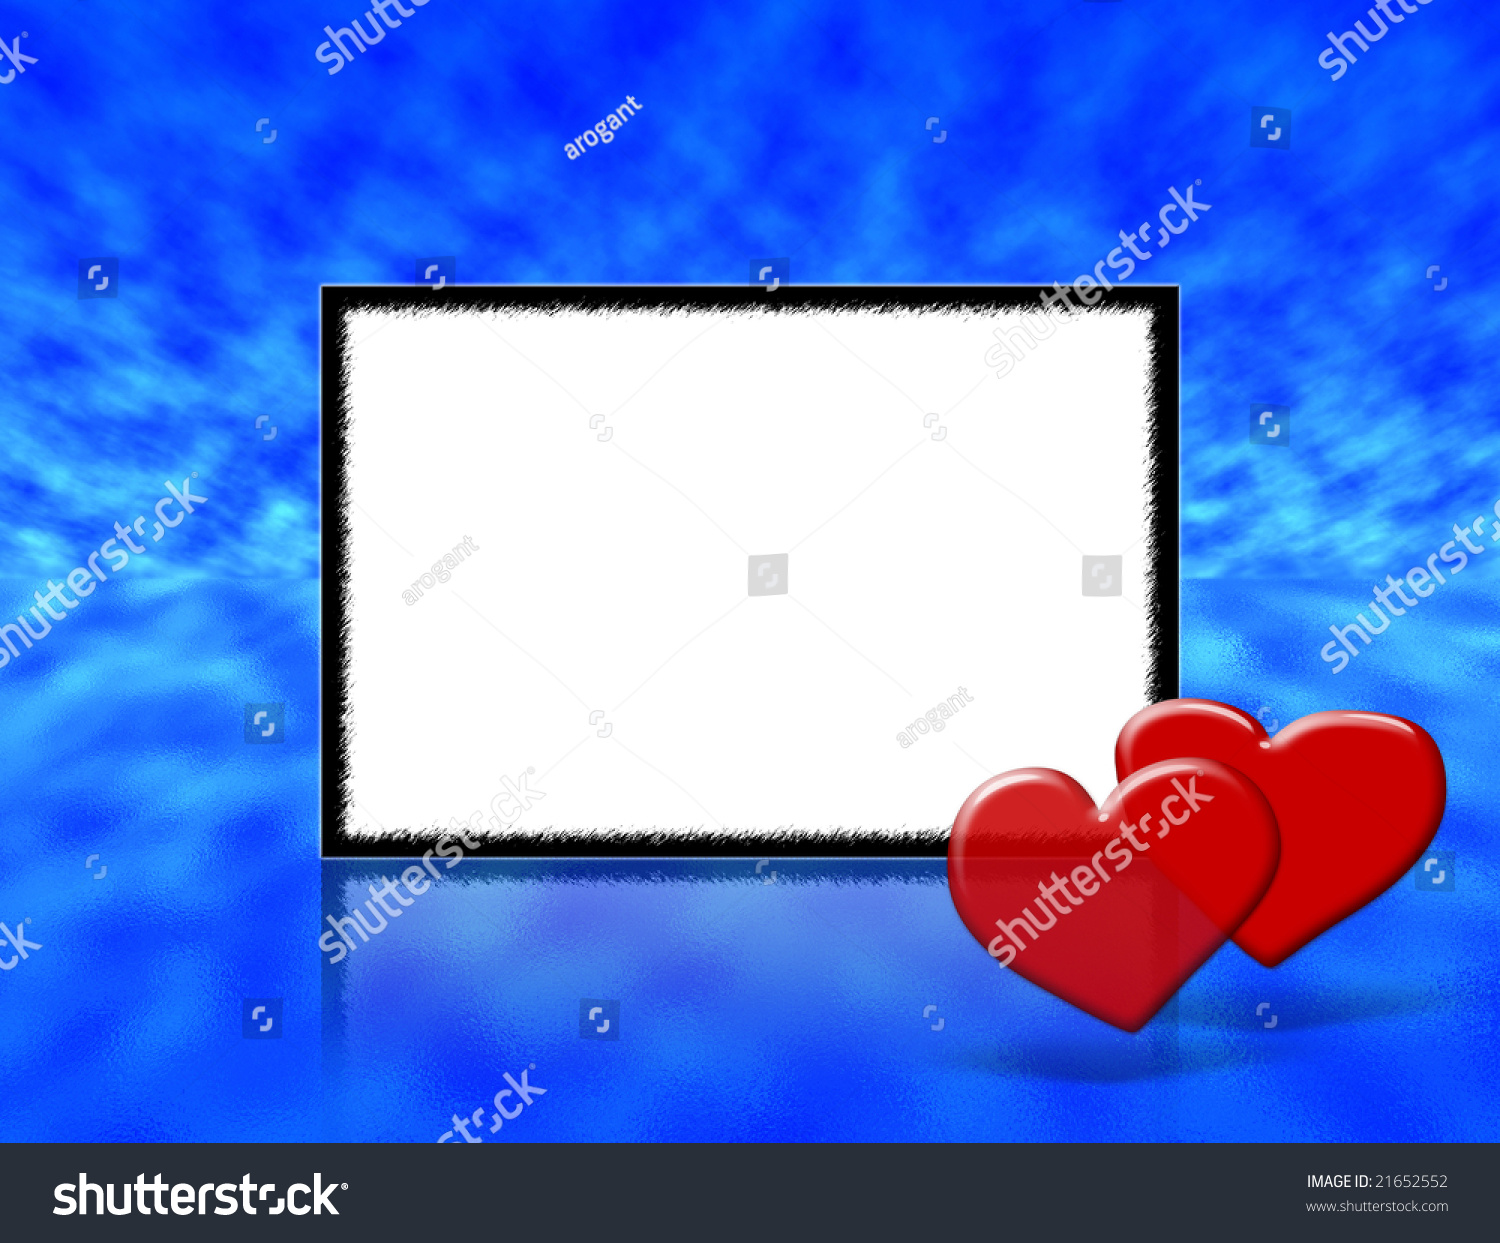 frame for wedding anniversary or valentines day invitations with blue abstract background